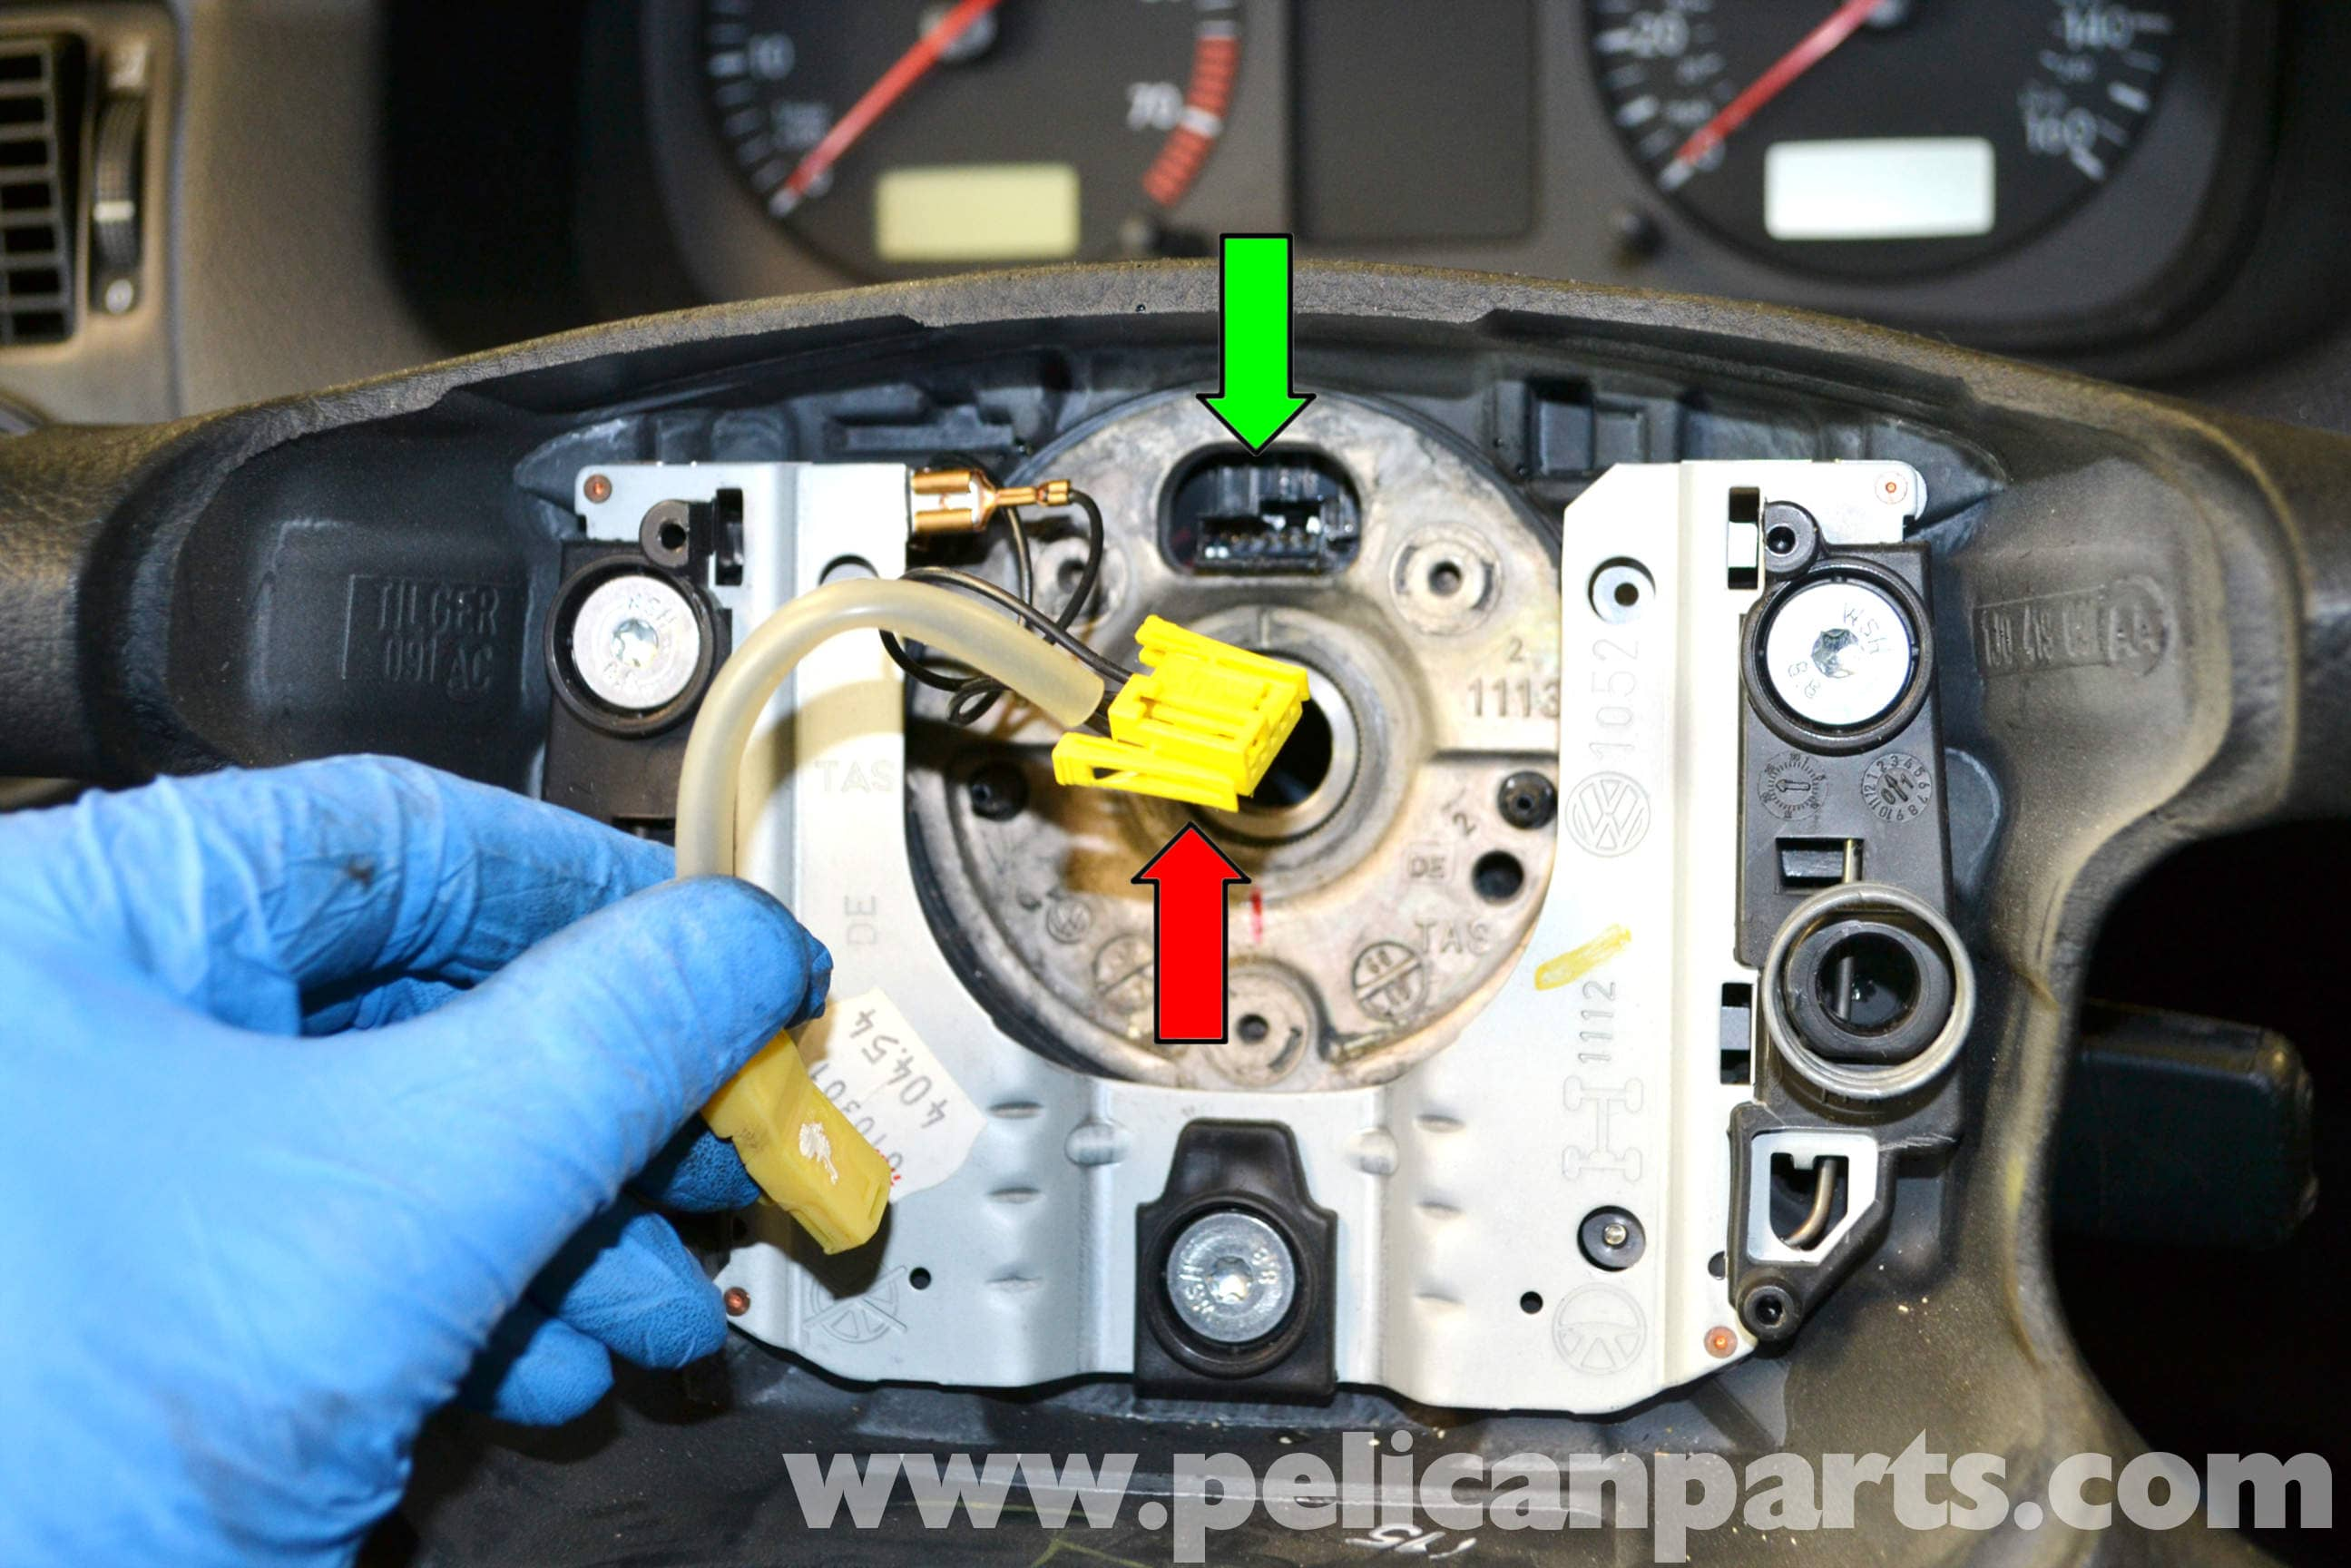 pic10 volkswagen golf gti mk iv steering wheel and air bag removal (1999 74 VW Beetle Wiring Diagram at aneh.co